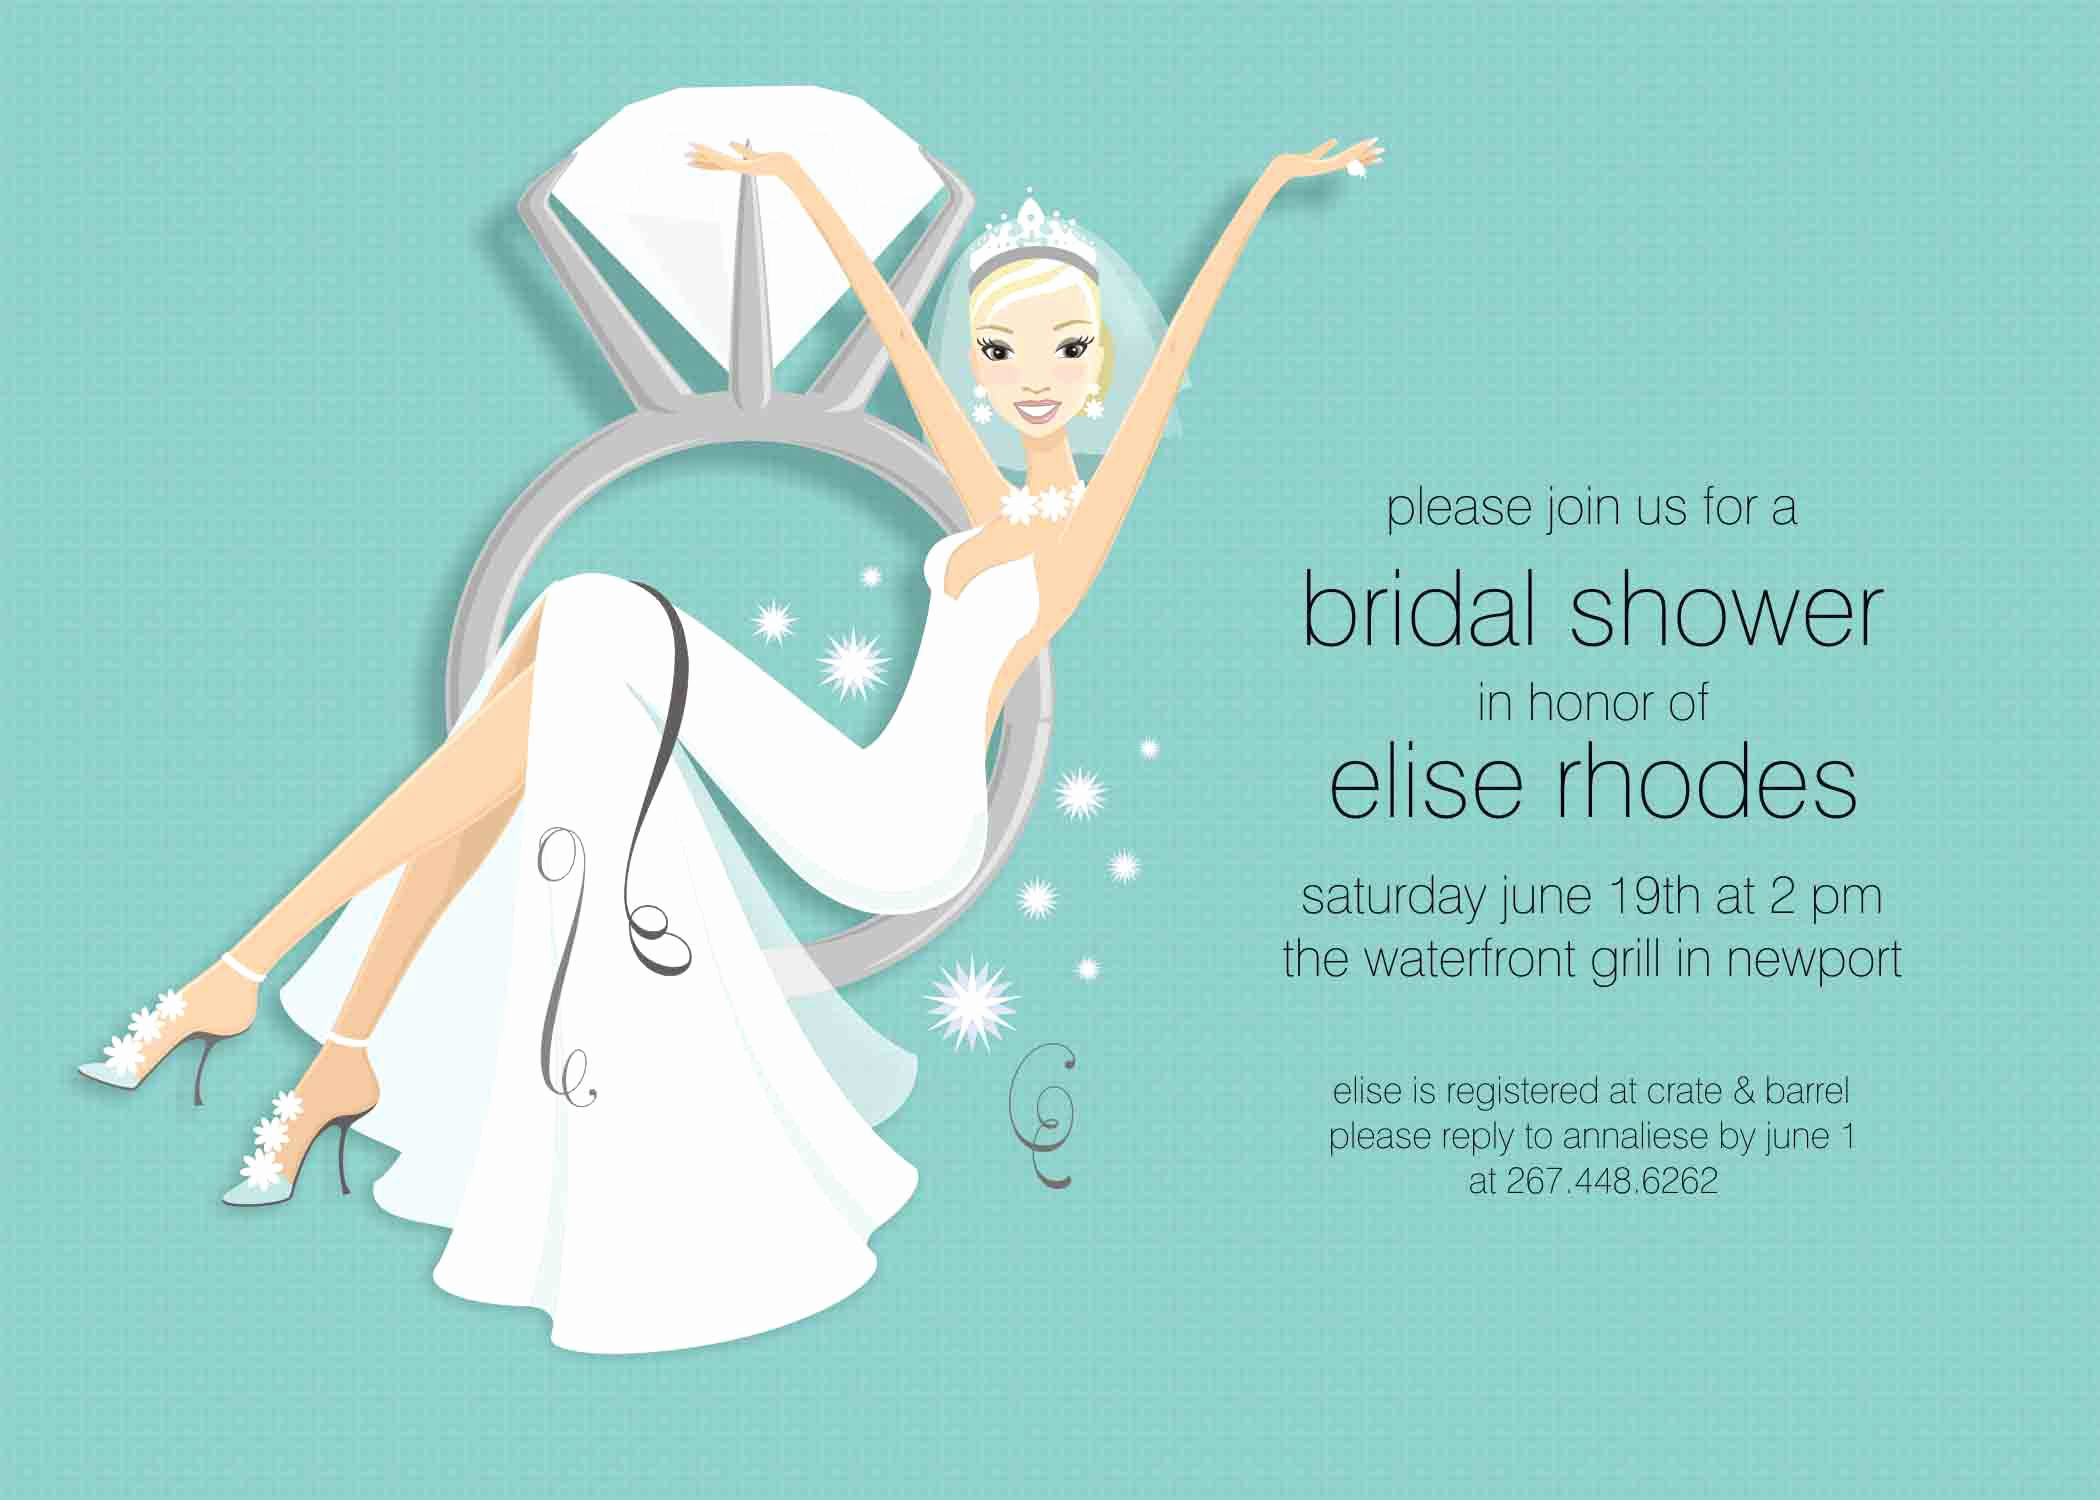 Bridal Shower Invitation Template Free Beautiful Baptism Invitation Christening Invitation Card Maker